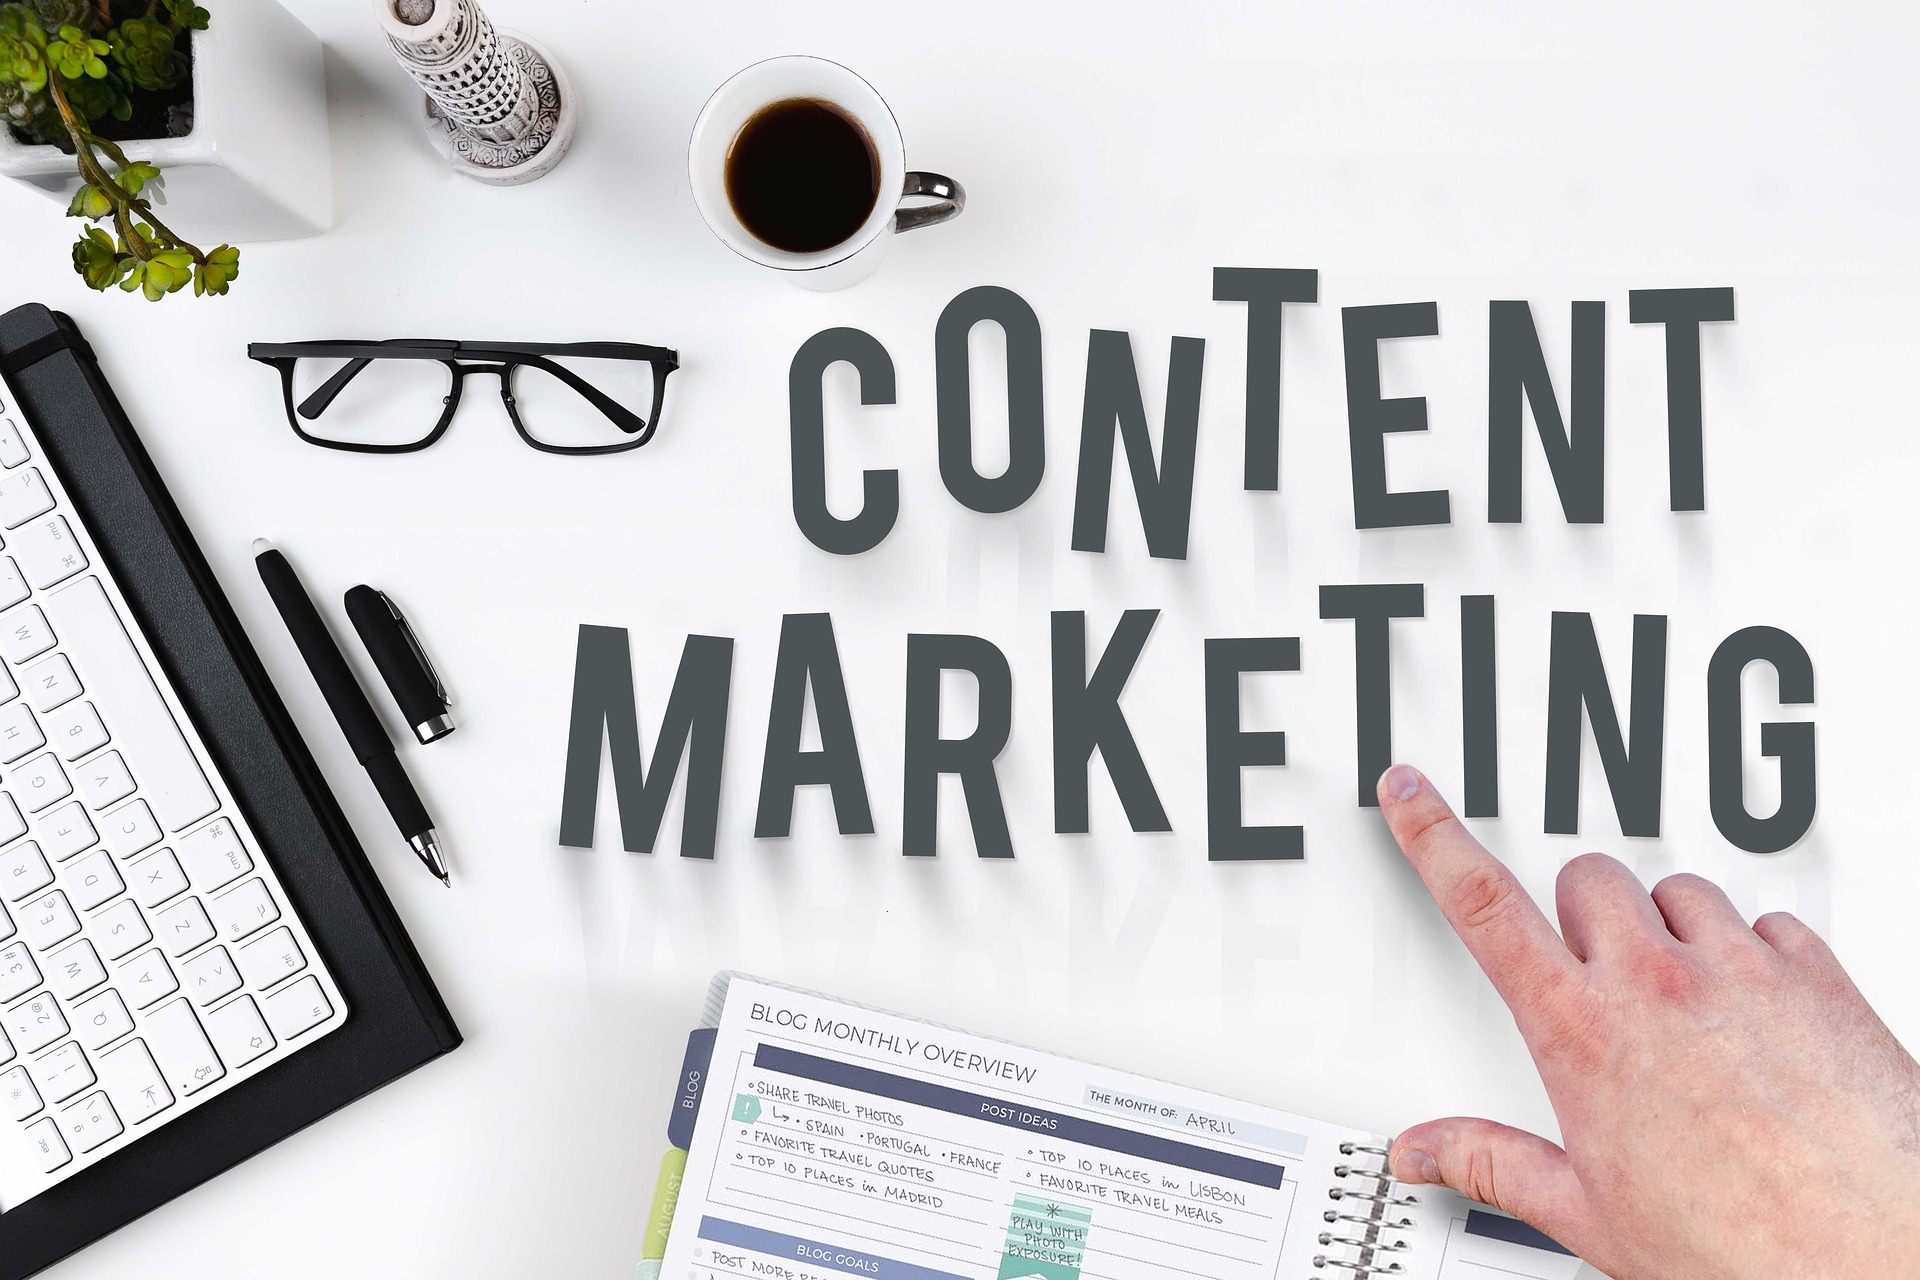 Content marketing includes driving growth in your sites organic traffic